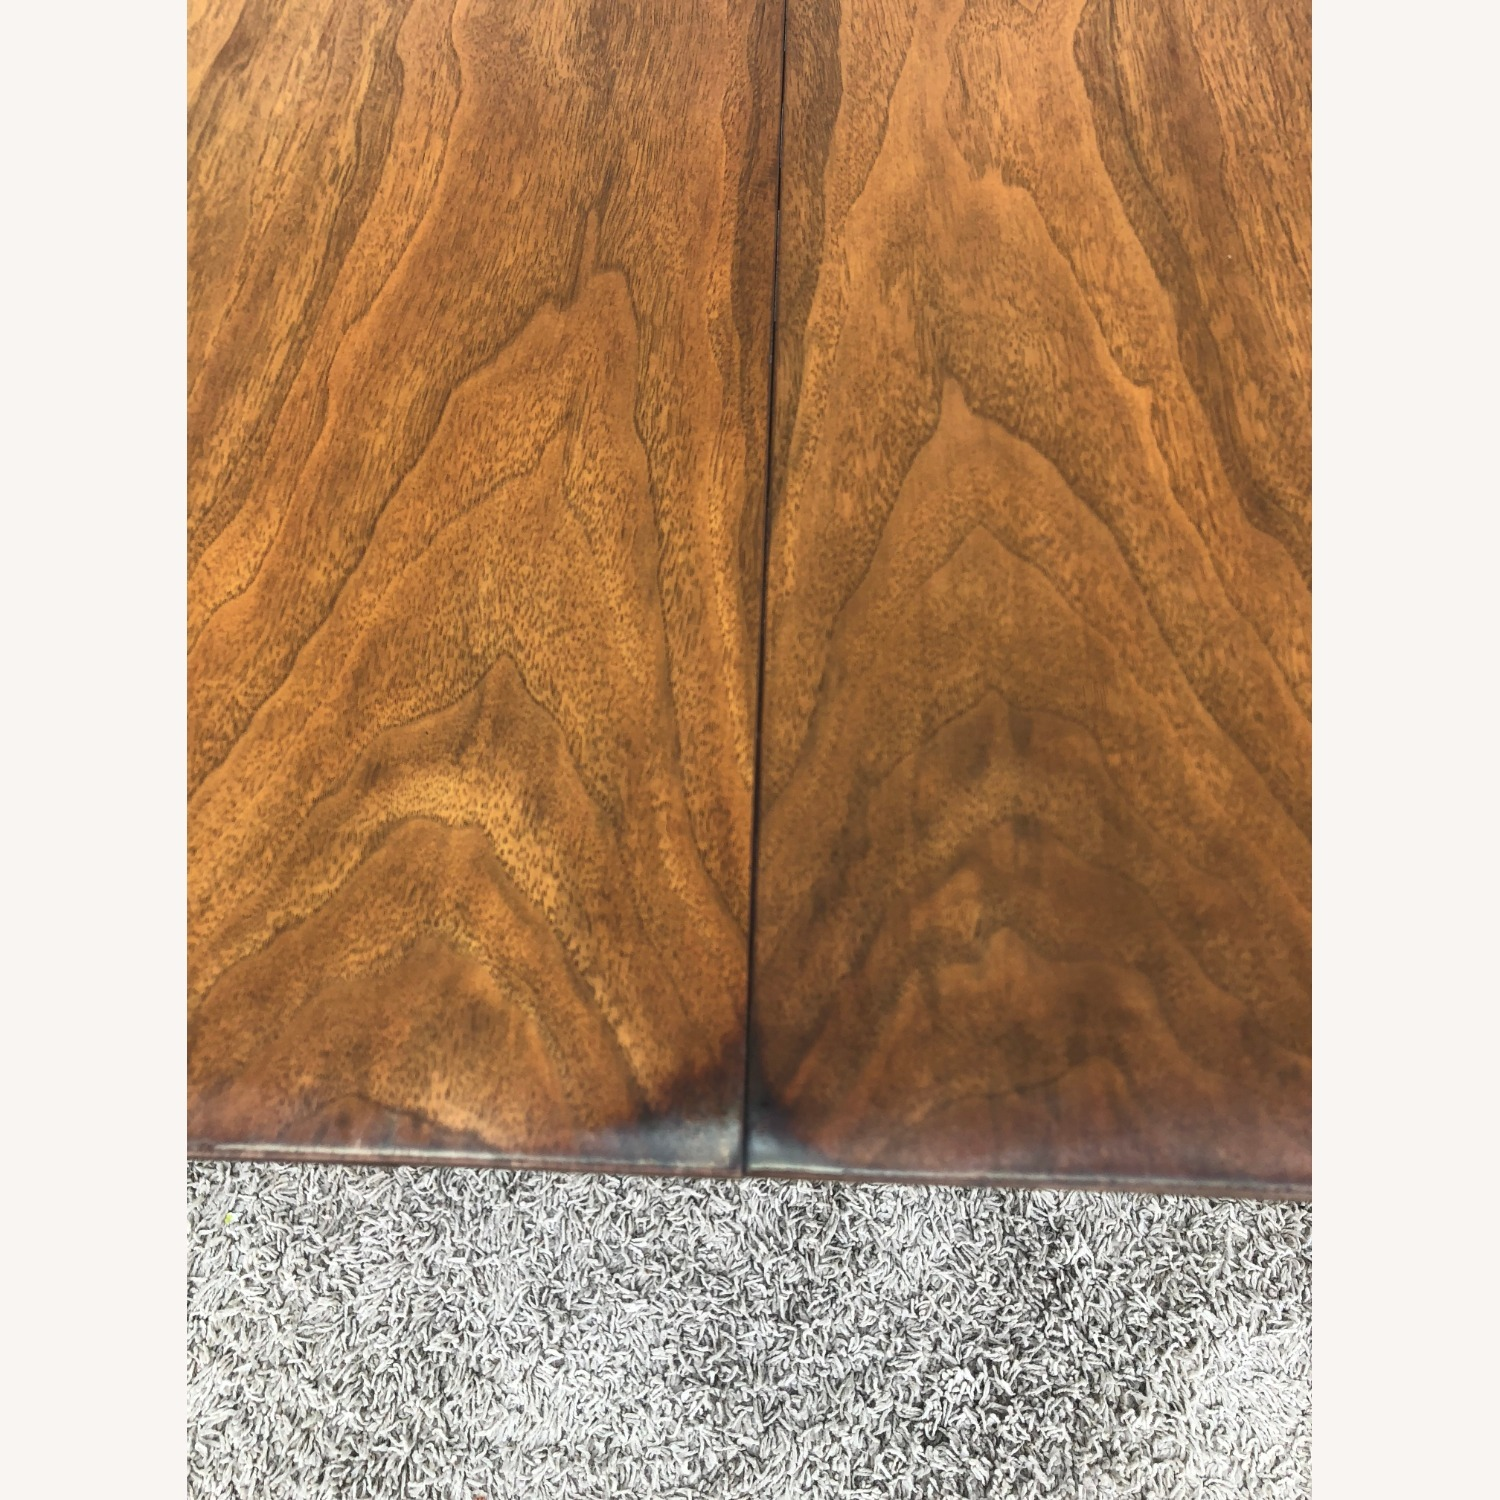 Mid Century Walnut Dining Table with 2 Leafs - image-5